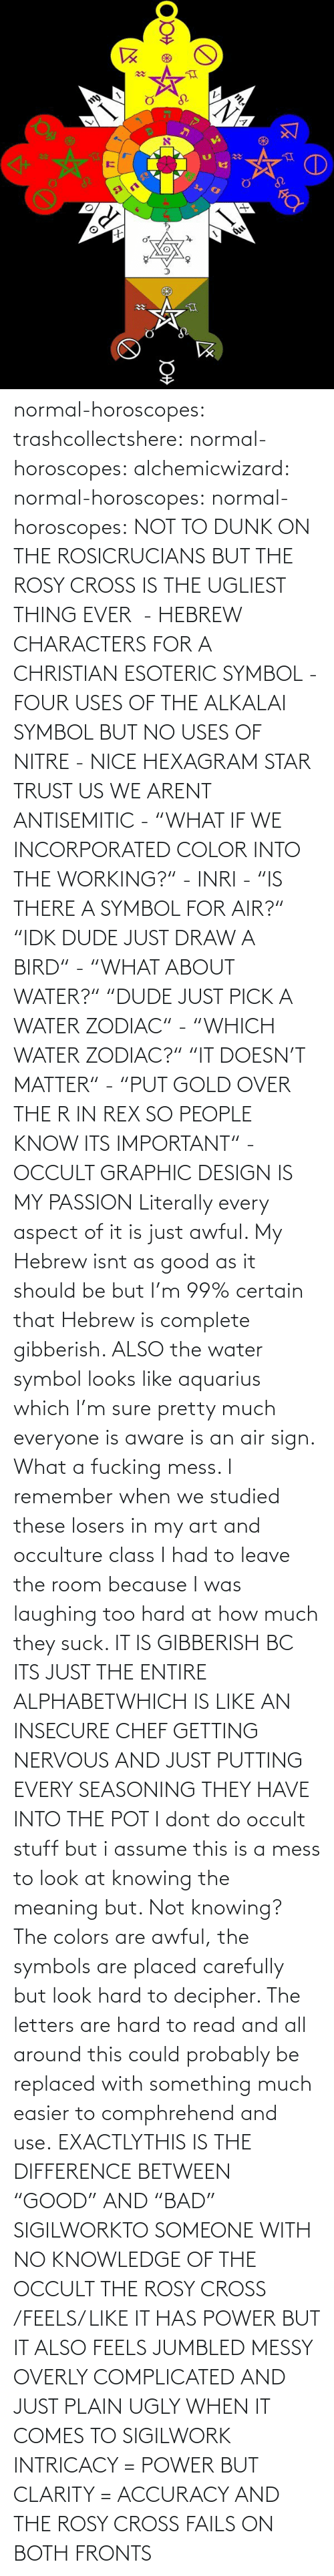 "Suck: normal-horoscopes:  trashcollectshere: normal-horoscopes:   alchemicwizard:  normal-horoscopes:  normal-horoscopes: NOT TO DUNK ON THE ROSICRUCIANS BUT THE ROSY CROSS IS THE UGLIEST THING EVER  - HEBREW CHARACTERS FOR A CHRISTIAN ESOTERIC SYMBOL - FOUR USES OF THE ALKALAI SYMBOL BUT NO USES OF NITRE - NICE HEXAGRAM STAR TRUST US WE ARENT ANTISEMITIC - ""WHAT IF WE INCORPORATED COLOR INTO THE WORKING?"" - INRI - ""IS THERE A SYMBOL FOR AIR?"" ""IDK DUDE JUST DRAW A BIRD"" - ""WHAT ABOUT WATER?"" ""DUDE JUST PICK A WATER ZODIAC"" - ""WHICH WATER ZODIAC?"" ""IT DOESN'T MATTER"" - ""PUT GOLD OVER THE R IN REX SO PEOPLE KNOW ITS IMPORTANT"" - OCCULT GRAPHIC DESIGN IS MY PASSION  Literally every aspect of it is just awful. My Hebrew isnt as good as it should be but I'm 99% certain that Hebrew is complete gibberish.  ALSO the water symbol looks like aquarius which I'm sure pretty much everyone is aware is an air sign. What a fucking mess.  I remember when we studied these losers in my art and occulture class I had to leave the room because I was laughing too hard at how much they suck.   IT IS GIBBERISH BC ITS JUST THE ENTIRE ALPHABETWHICH IS LIKE AN INSECURE CHEF GETTING NERVOUS AND JUST PUTTING EVERY SEASONING THEY HAVE INTO THE POT     I dont do occult stuff but i assume this is a mess to look at knowing the meaning but. Not knowing? The colors are awful, the symbols are placed carefully but look hard to decipher. The letters are hard to read and all around this could probably be replaced with something much easier to comphrehend and use.  EXACTLYTHIS IS THE DIFFERENCE BETWEEN ""GOOD"" AND ""BAD"" SIGILWORKTO SOMEONE WITH NO KNOWLEDGE OF THE OCCULT THE ROSY CROSS /FEELS/ LIKE IT HAS POWER BUT IT ALSO FEELS JUMBLED MESSY OVERLY COMPLICATED AND JUST PLAIN UGLY WHEN IT COMES TO SIGILWORK INTRICACY = POWER BUT CLARITY = ACCURACY AND THE ROSY CROSS FAILS ON BOTH FRONTS"